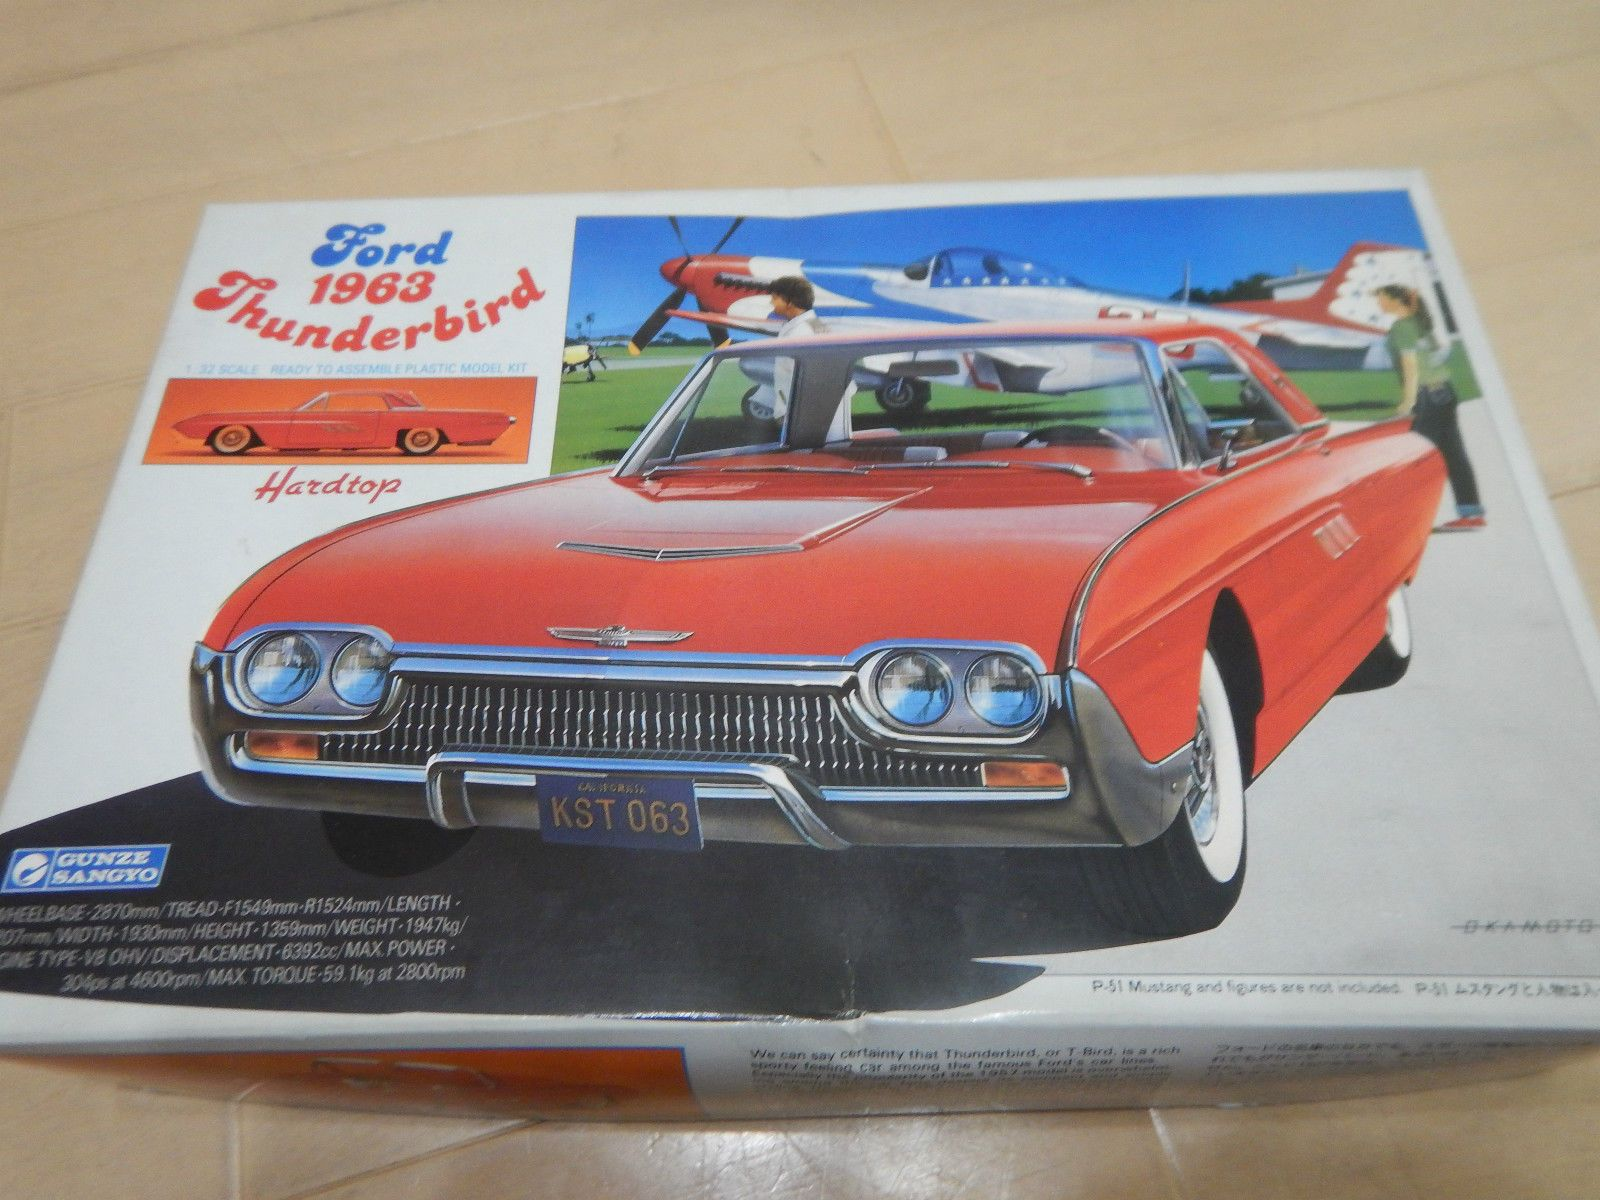 GUNZE Ford 1963 Thunderbird Hard Top 1 32 Scale Model Kit Vintage RARE | eBay